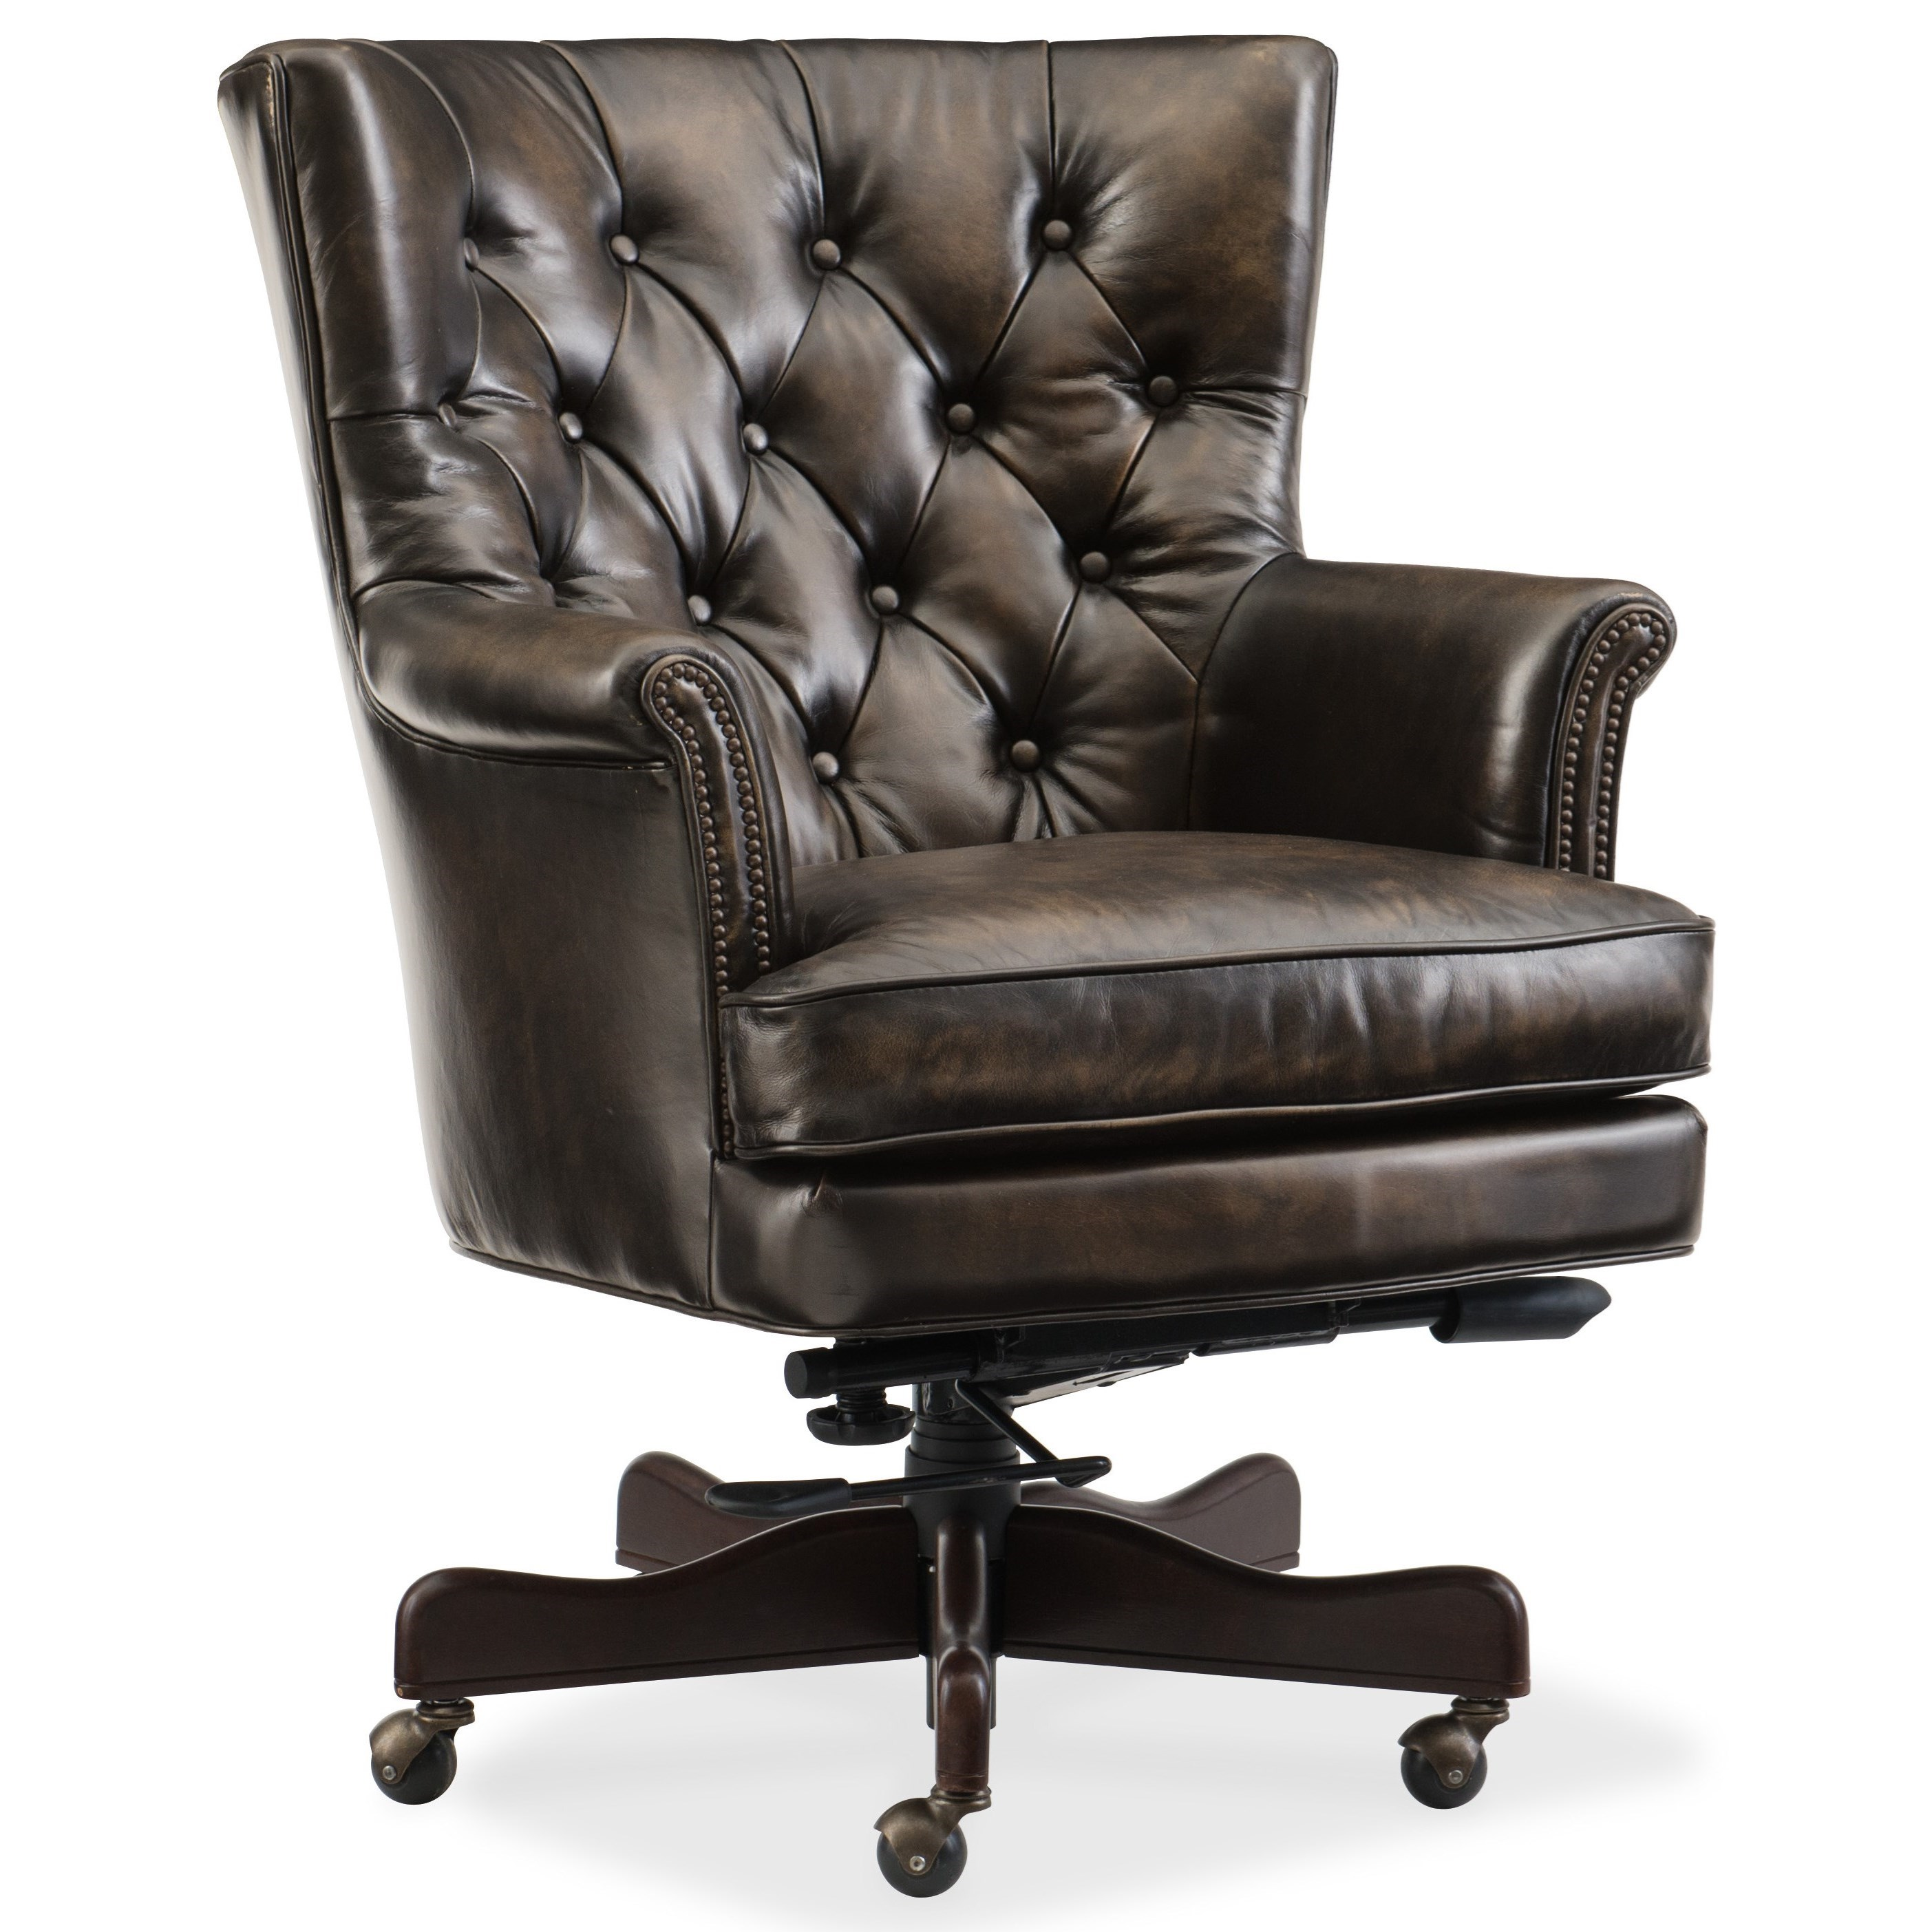 Executive Seating Theodore Home Office Chair by Hooker Furniture at Baer's Furniture